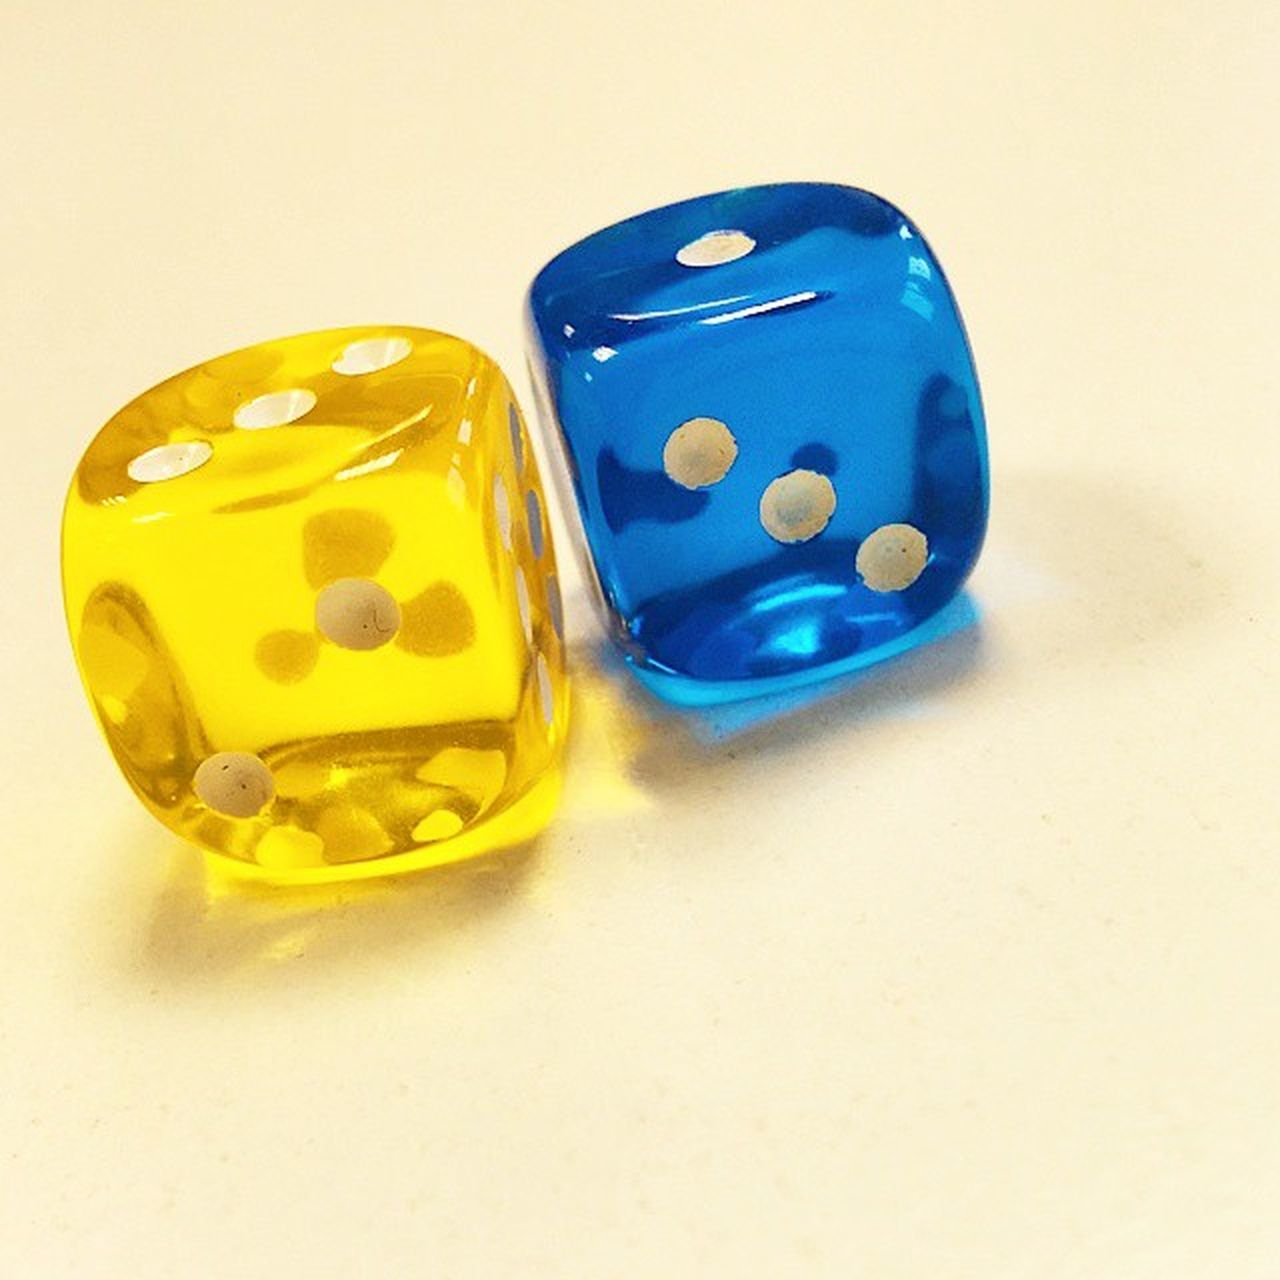 yellow, white background, studio shot, dice, close-up, blue, no people, chance